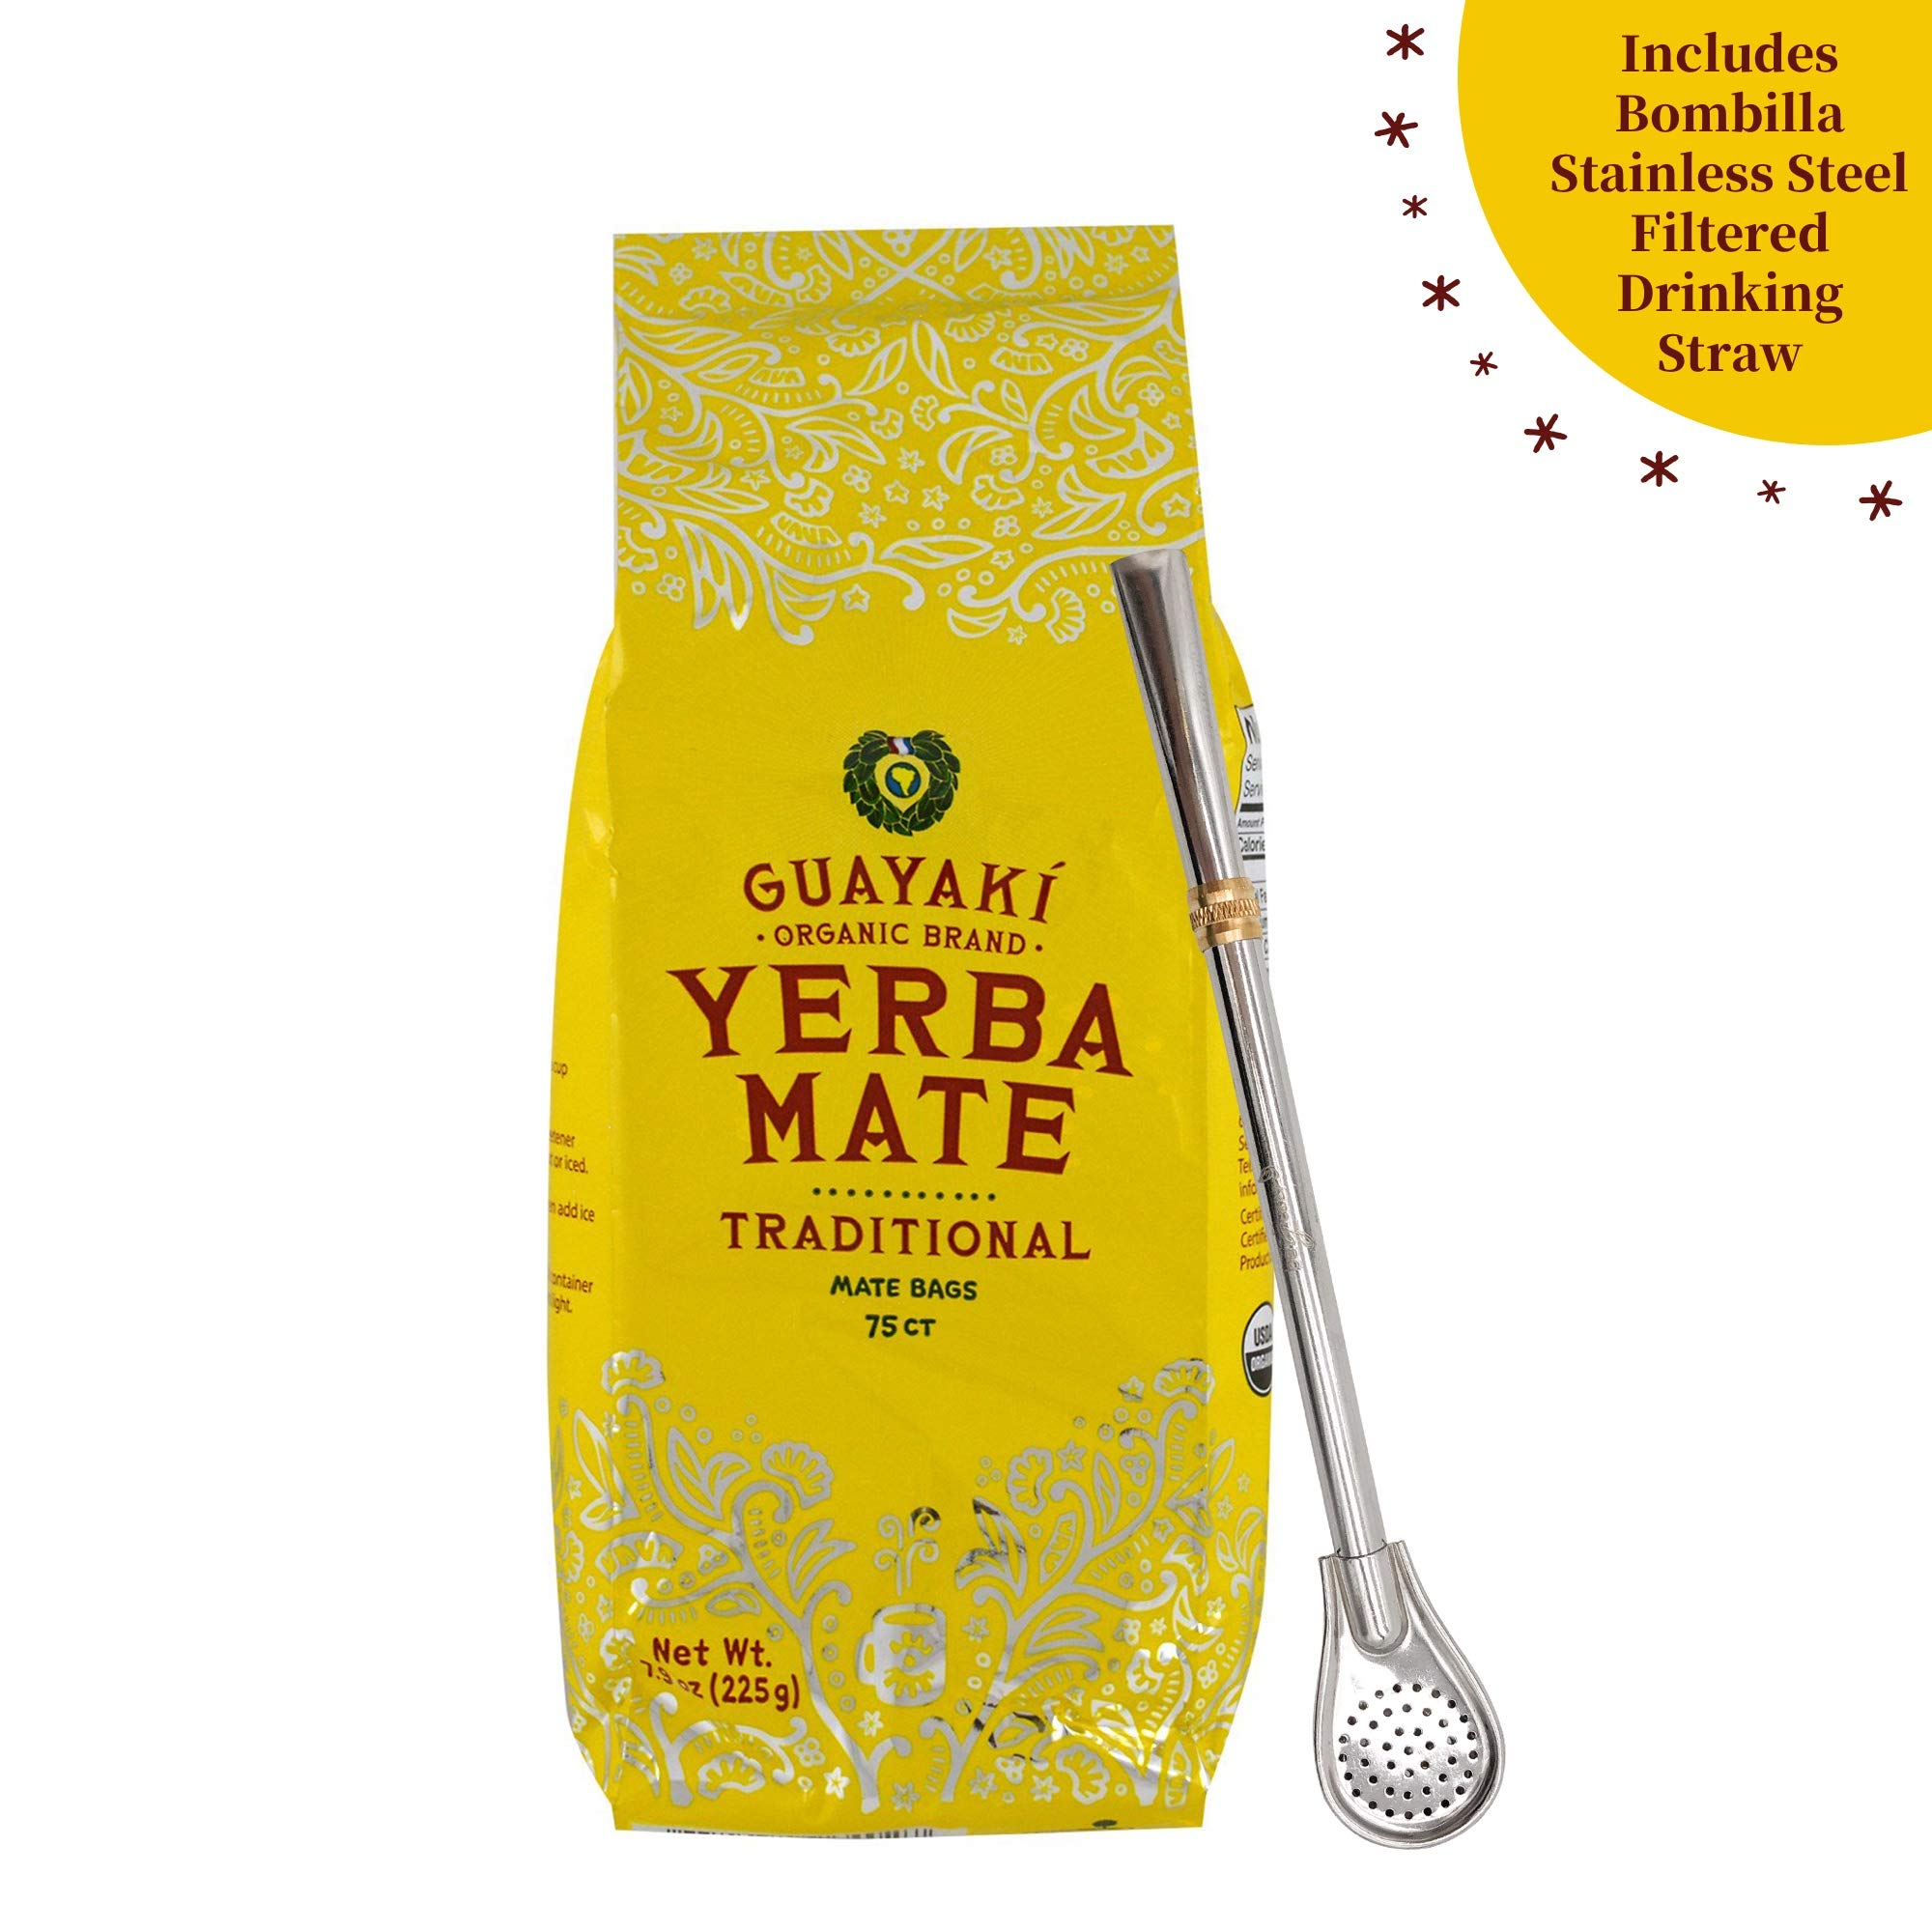 Guayaki Yerba Mate Traditional Organic Mate Tea - 7.9 oz, 75 Tea Bags - Rich in Antioxidants, Nutrients - Includes Bonus beGreen Bombilla Stainless Steel Filtered Drinking Straw